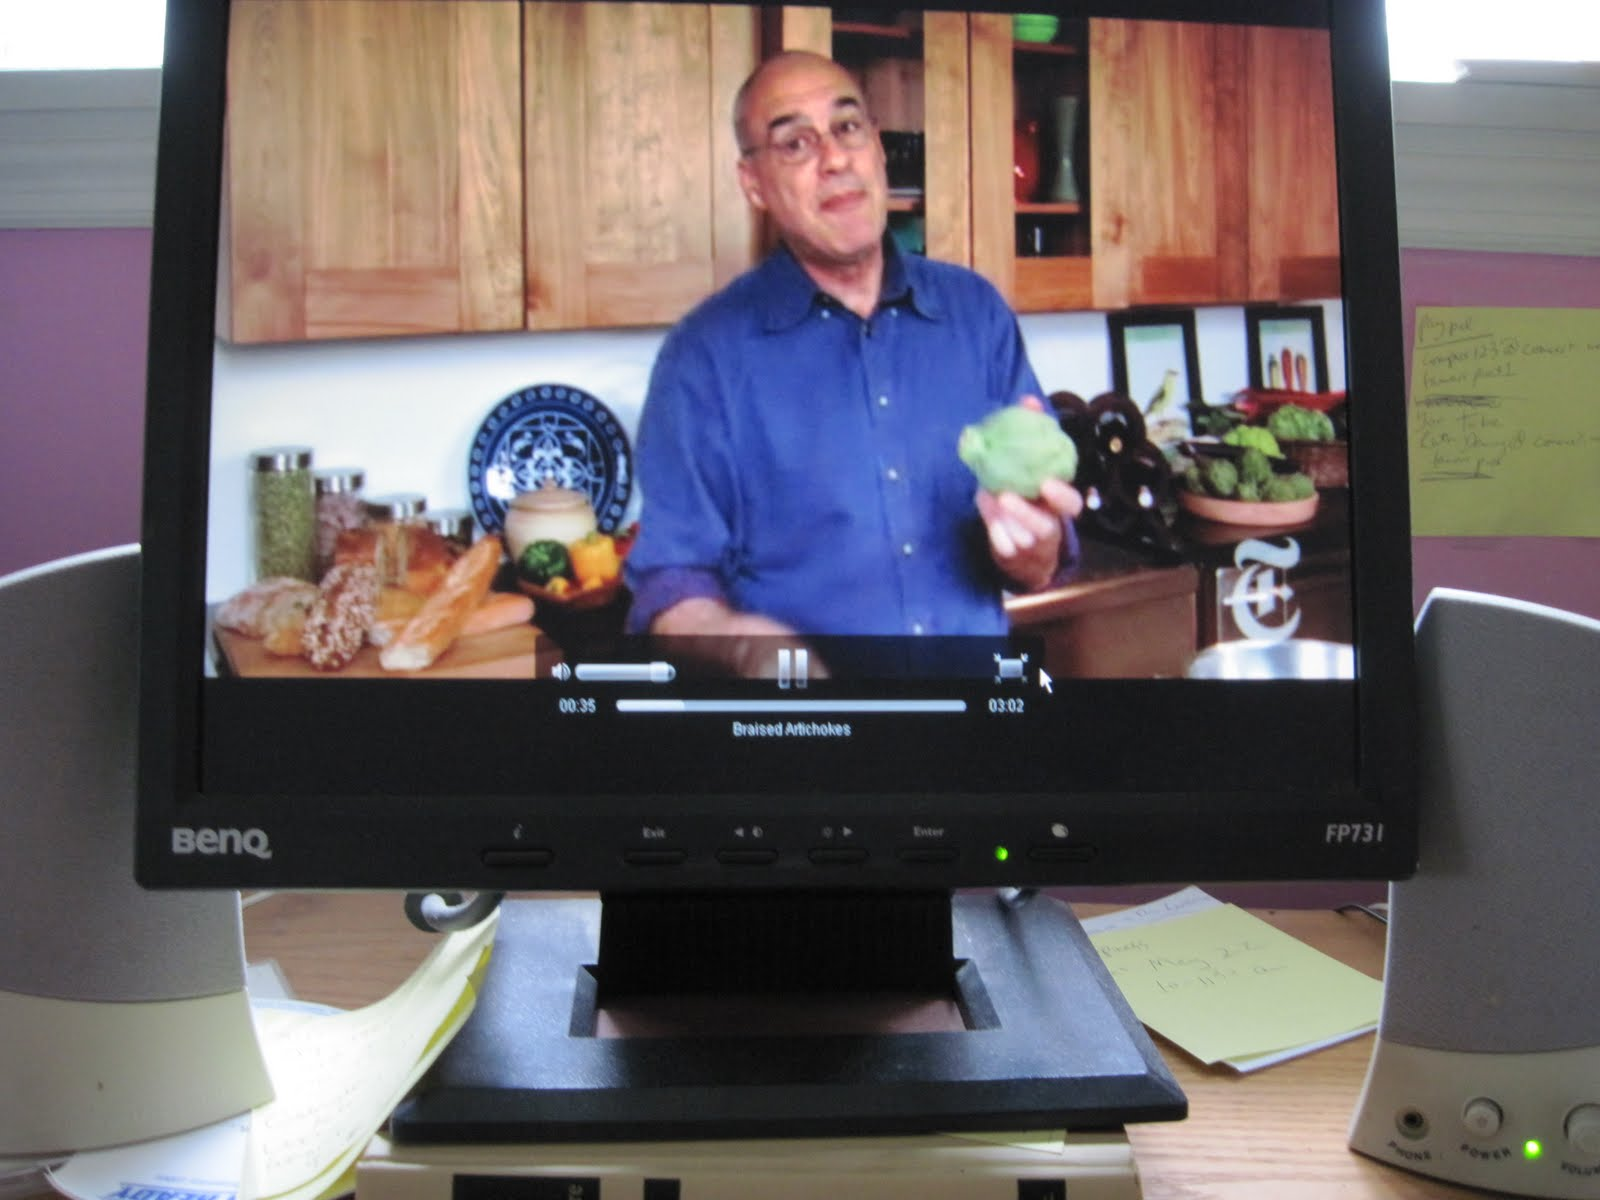 mark bittman All products and services featured are selected by our editors healthcom may receive compensation for some links to products and services on this website.